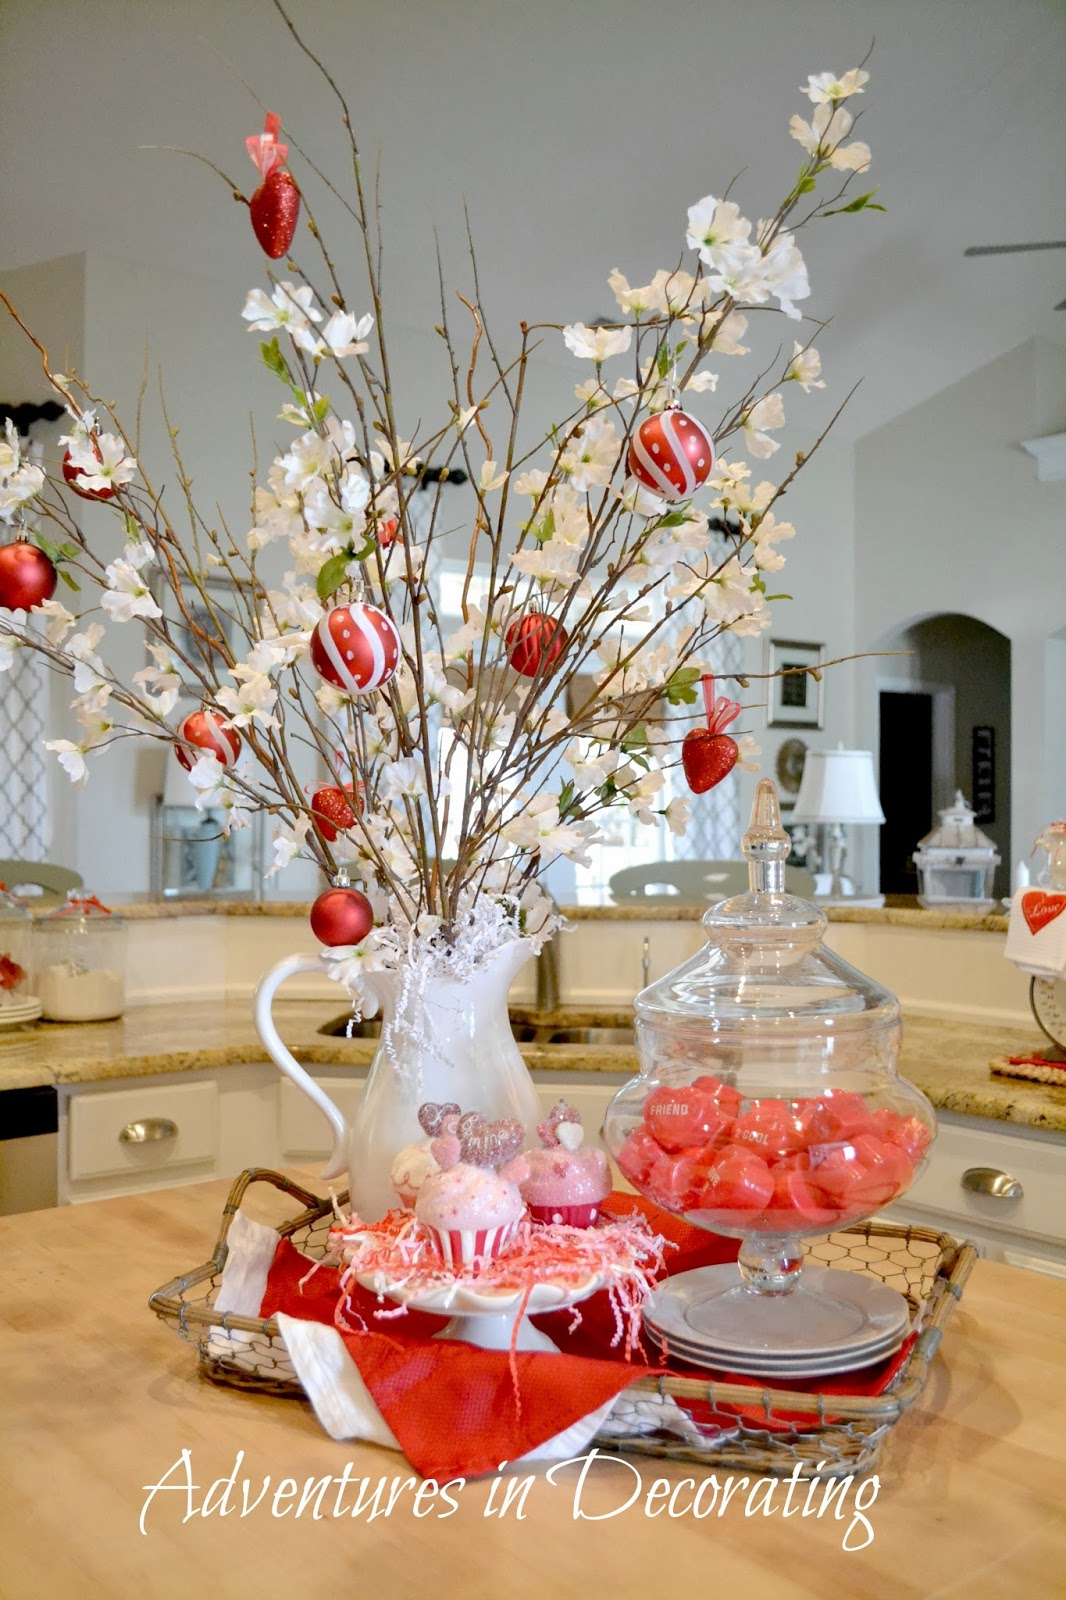 Decorative Items For Living Room: Adventures In Decorating: Our Valentine Kitchen